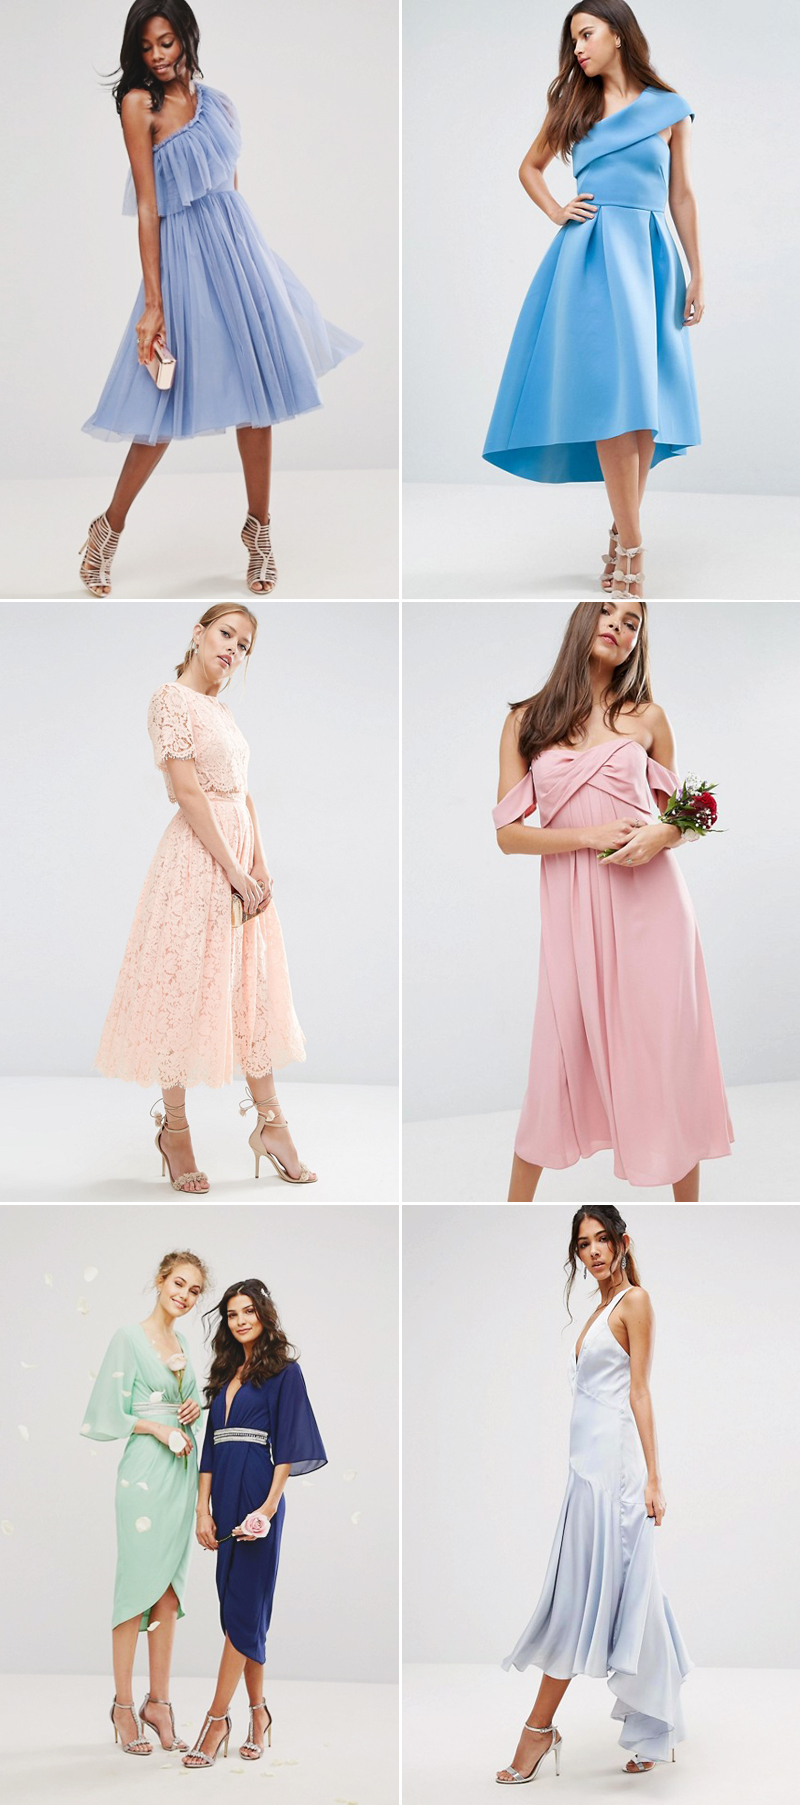 The 6 bridesmaid dress trends you need to know for this spring contemporary tea length midi dresses ombrellifo Choice Image